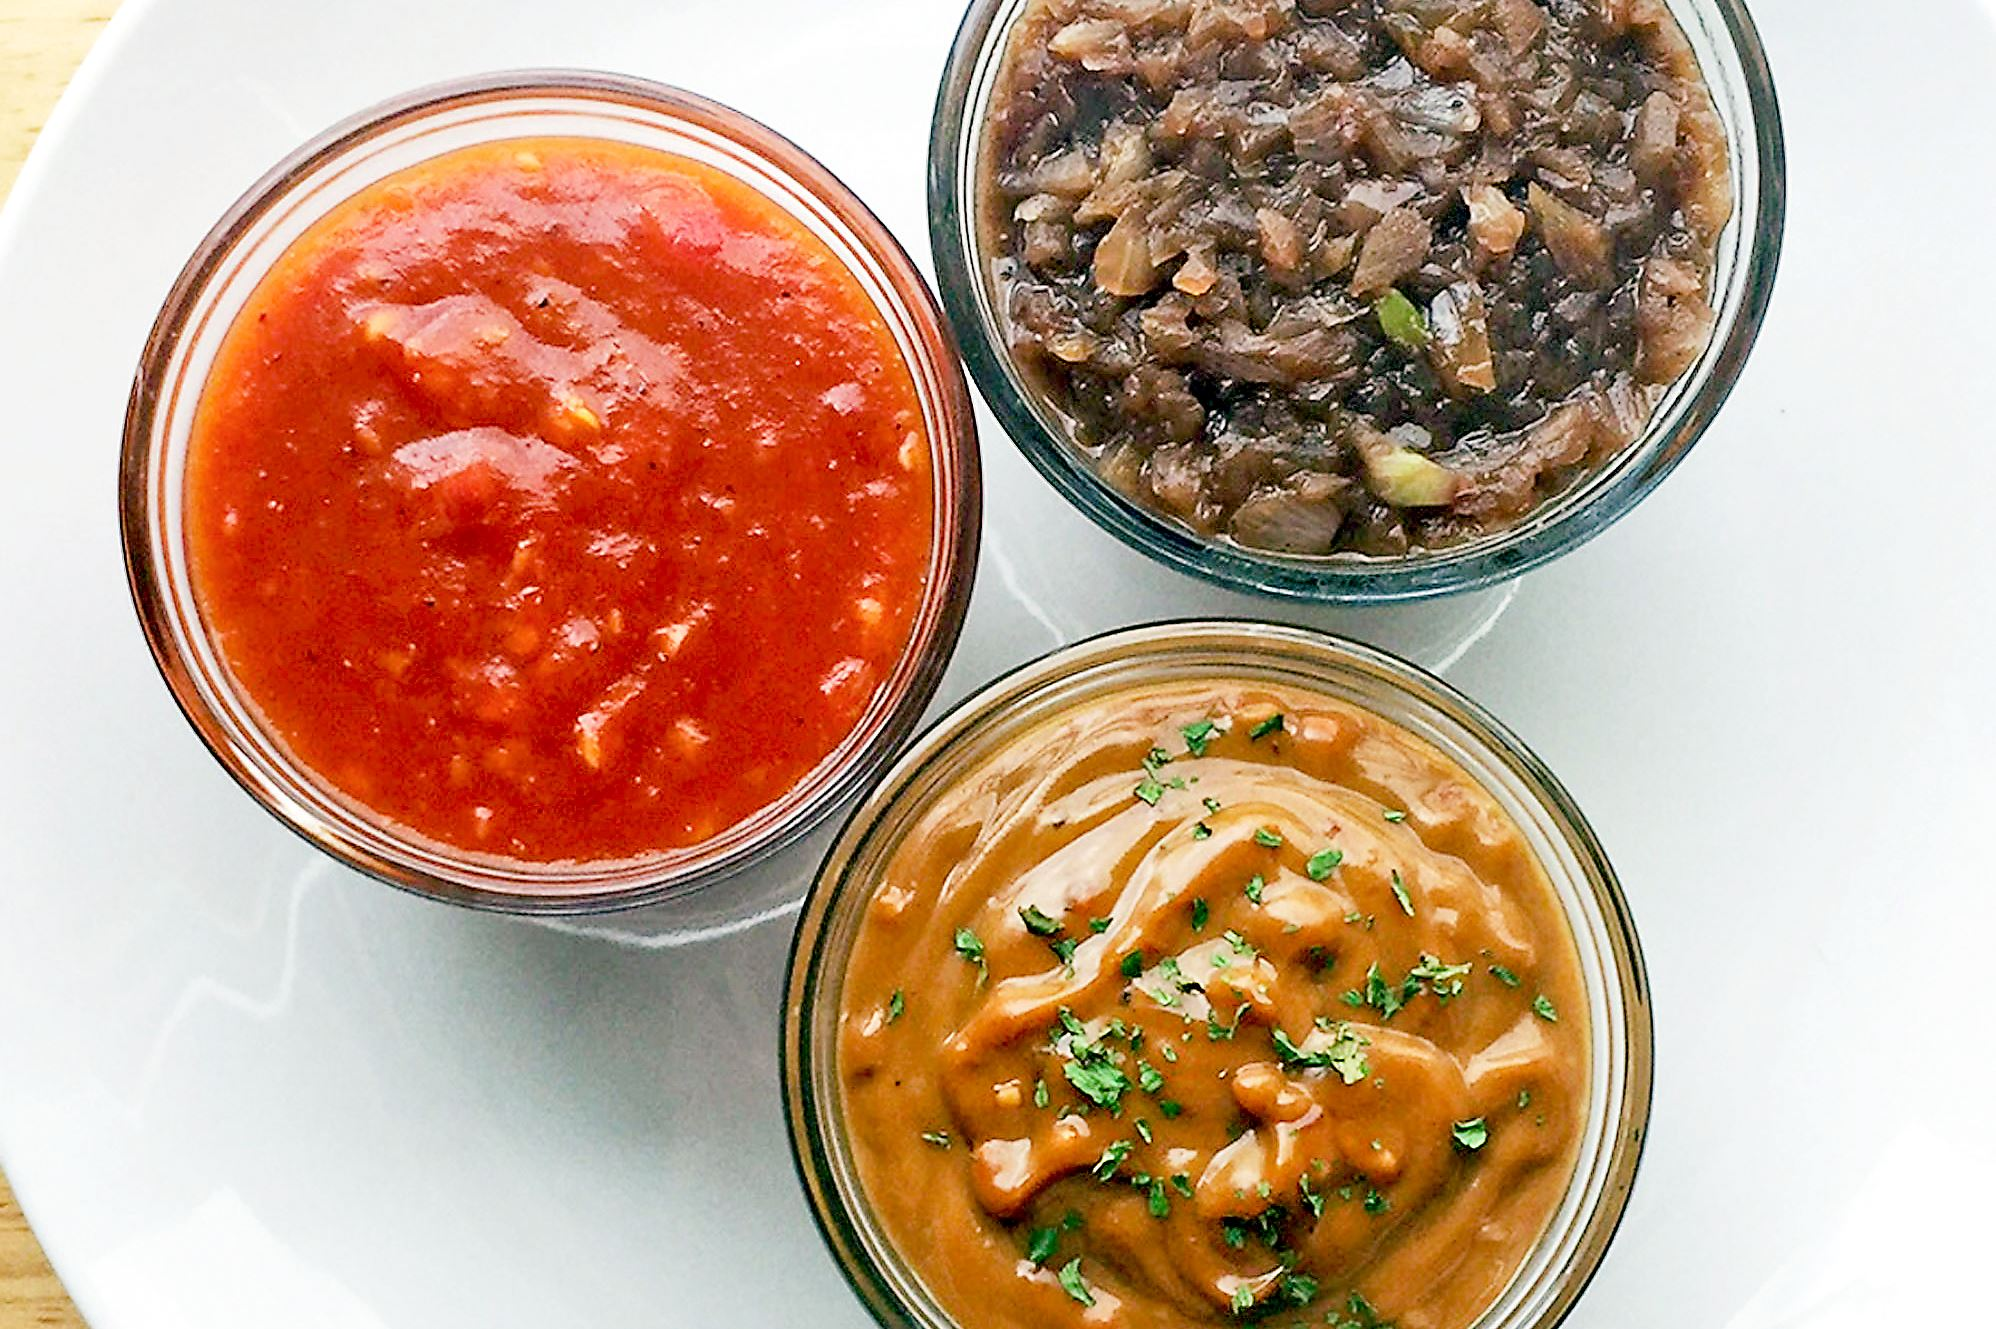 Kane Three Sauces 3 Clockwise From Left Spicy Mango Barbecue Sauce